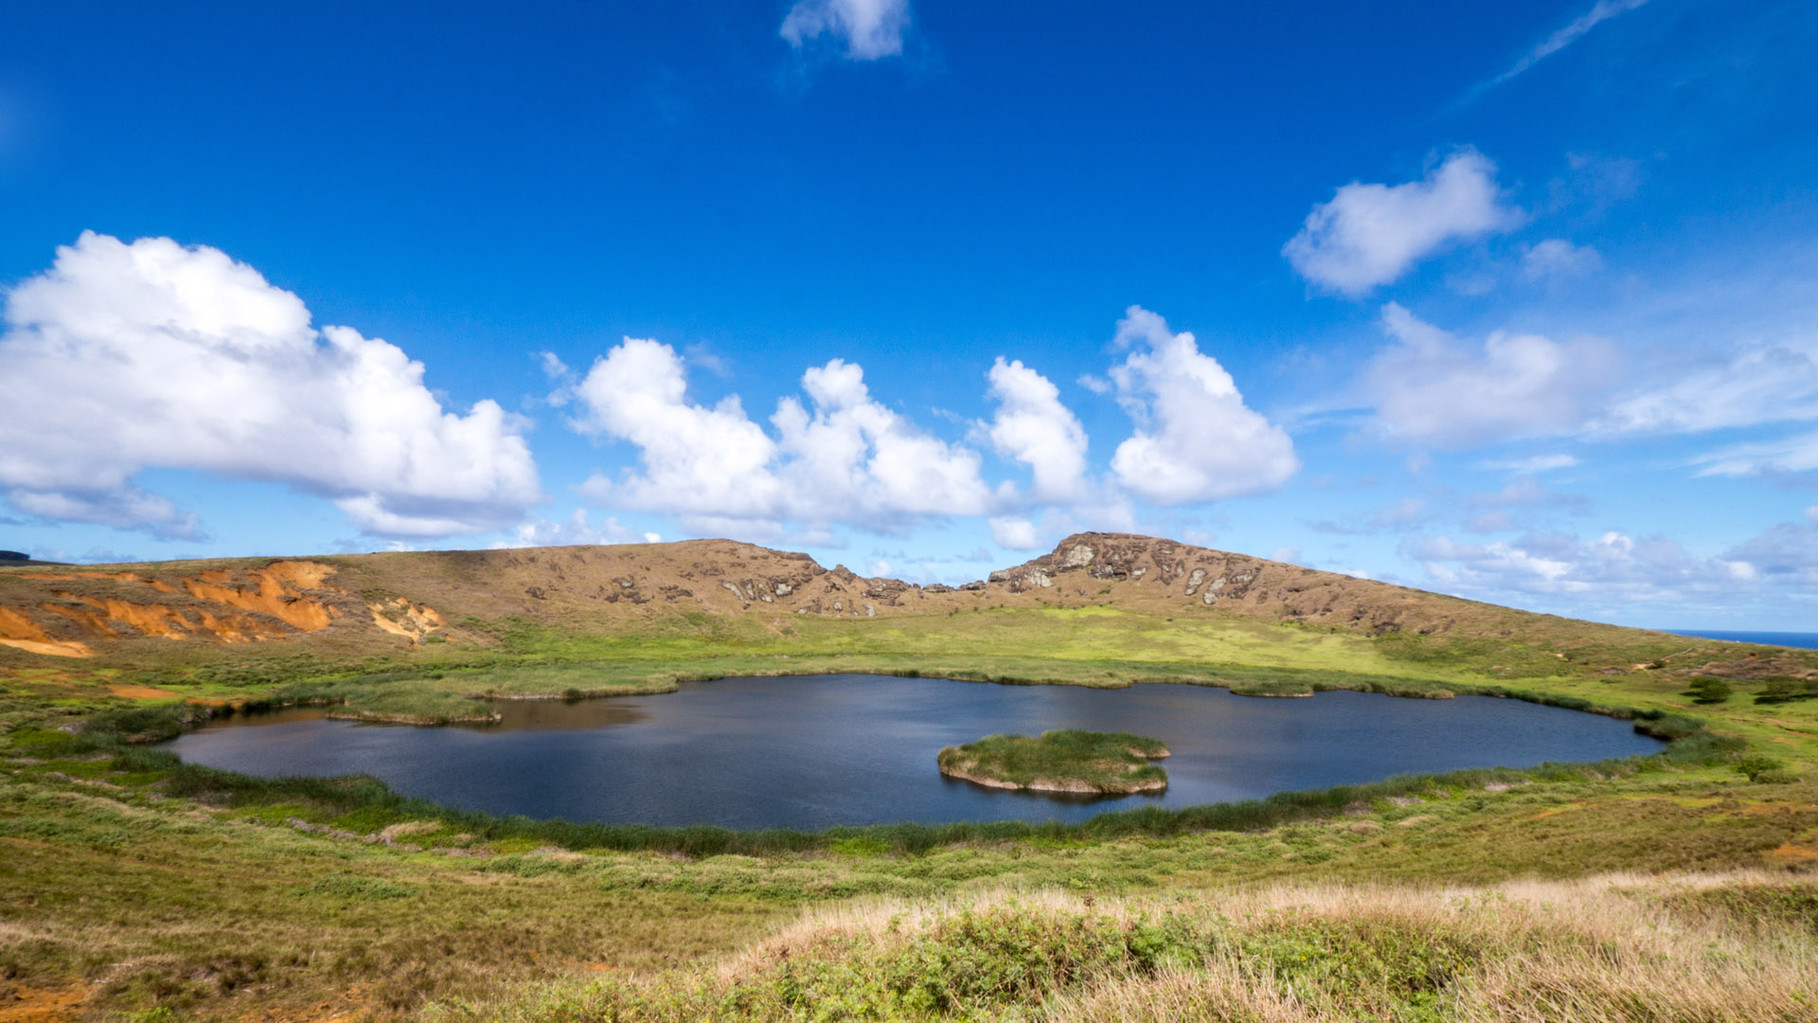 Rano Raraku crater lake